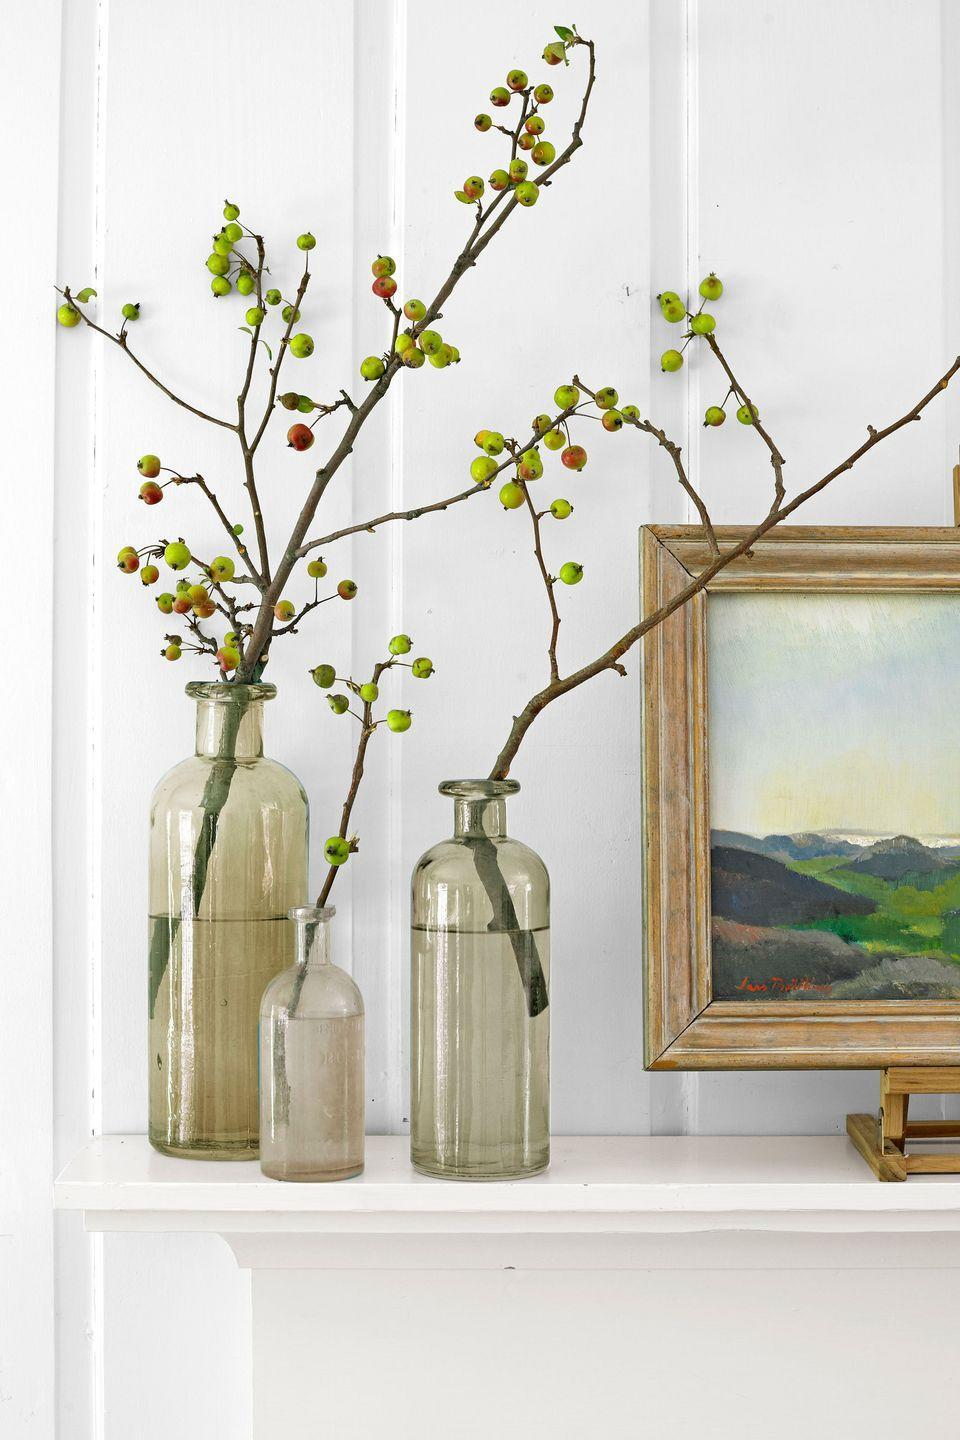 """<p>The best thing about this sort of display? There's absolutely no arranging involved. Liza Lubell of <a href=""""http://peartreeflowers.com"""" rel=""""nofollow noopener"""" target=""""_blank"""" data-ylk=""""slk:Brooklyn's Peartree Flowers"""" class=""""link rapid-noclick-resp"""">Brooklyn's Peartree Flowers</a> simply stripped the leaves from each limb before putting it in a vase. """"This treatment highlights the prettiest feature of the plant—its fruit,"""" she explains. Group several different-size vases for even greater visual payoff. </p>"""